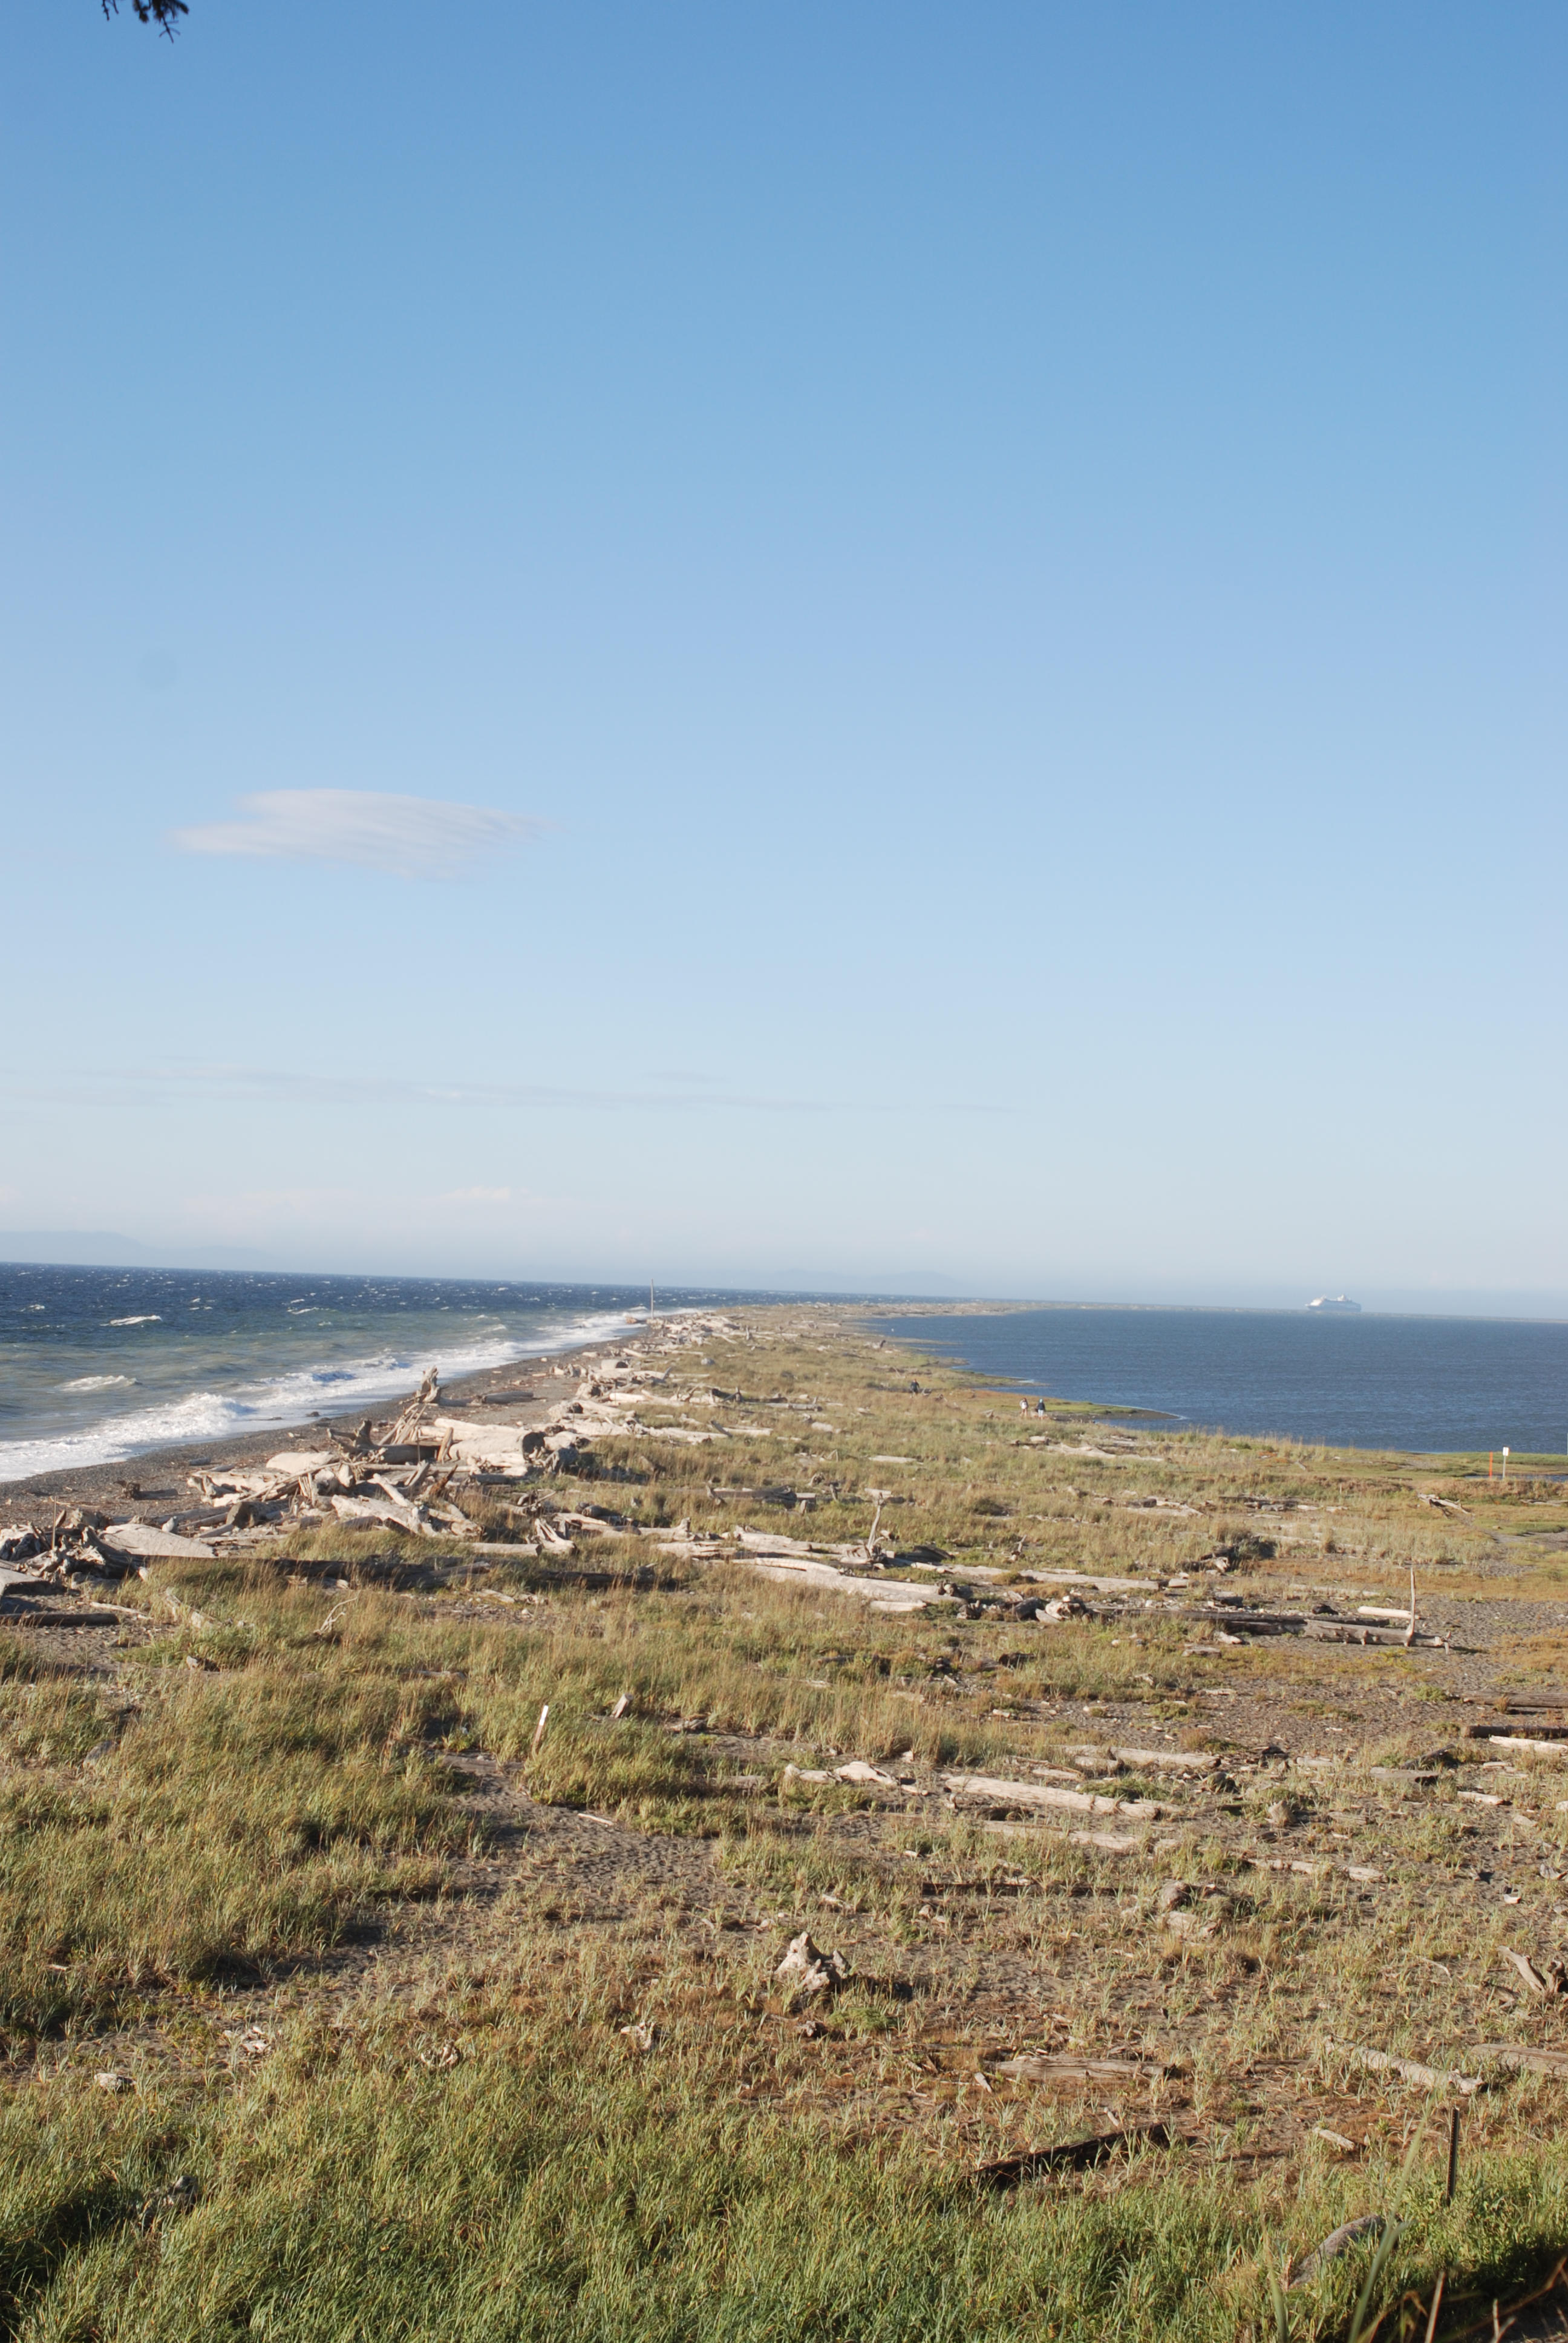 the Dungeness spit